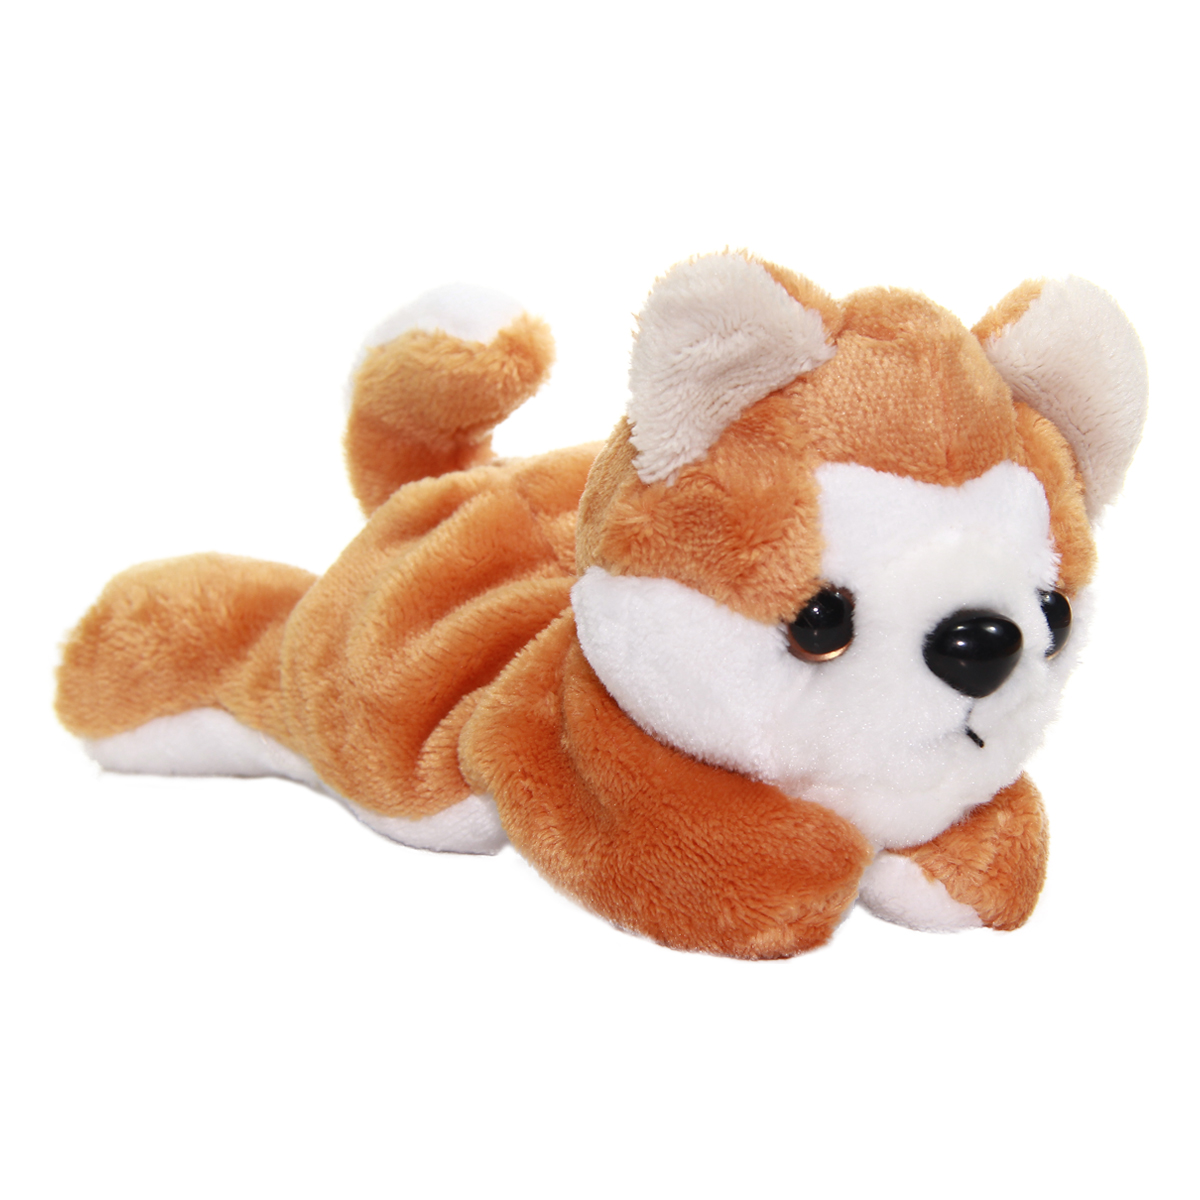 Kawaii Friends Dog Collection Brown White Plush 9 Inches